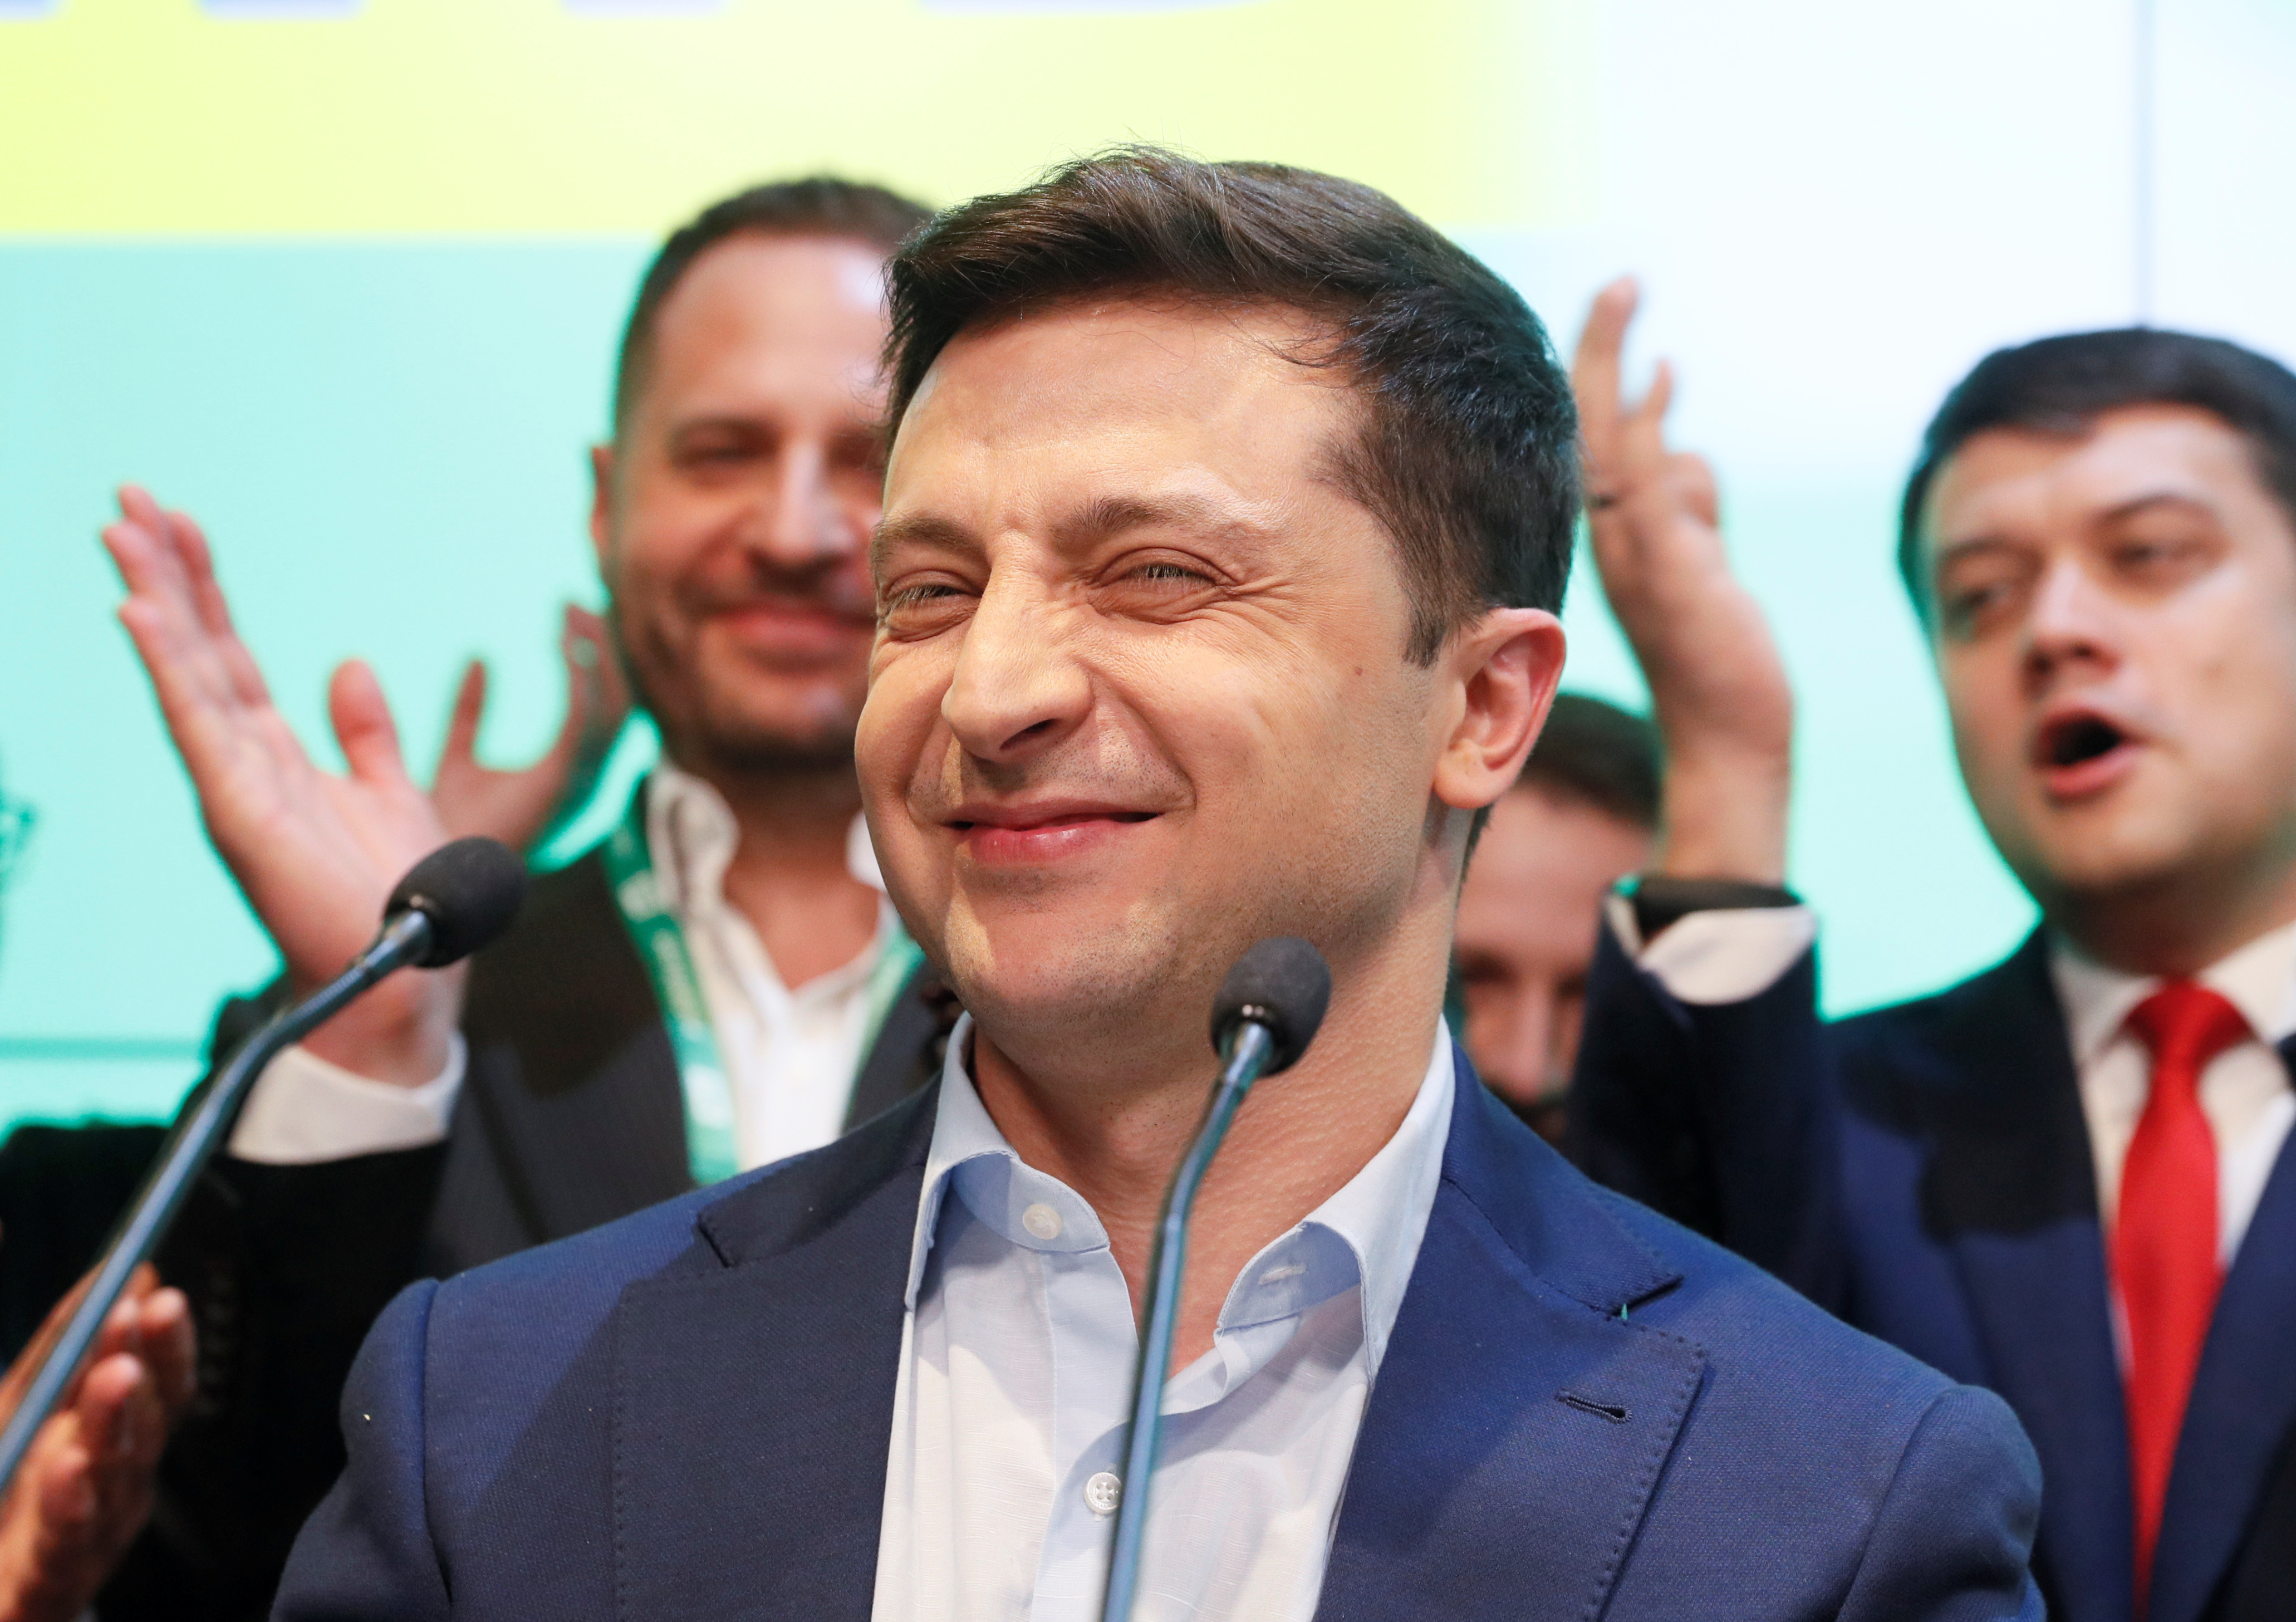 Zelensky smiles to his supporters